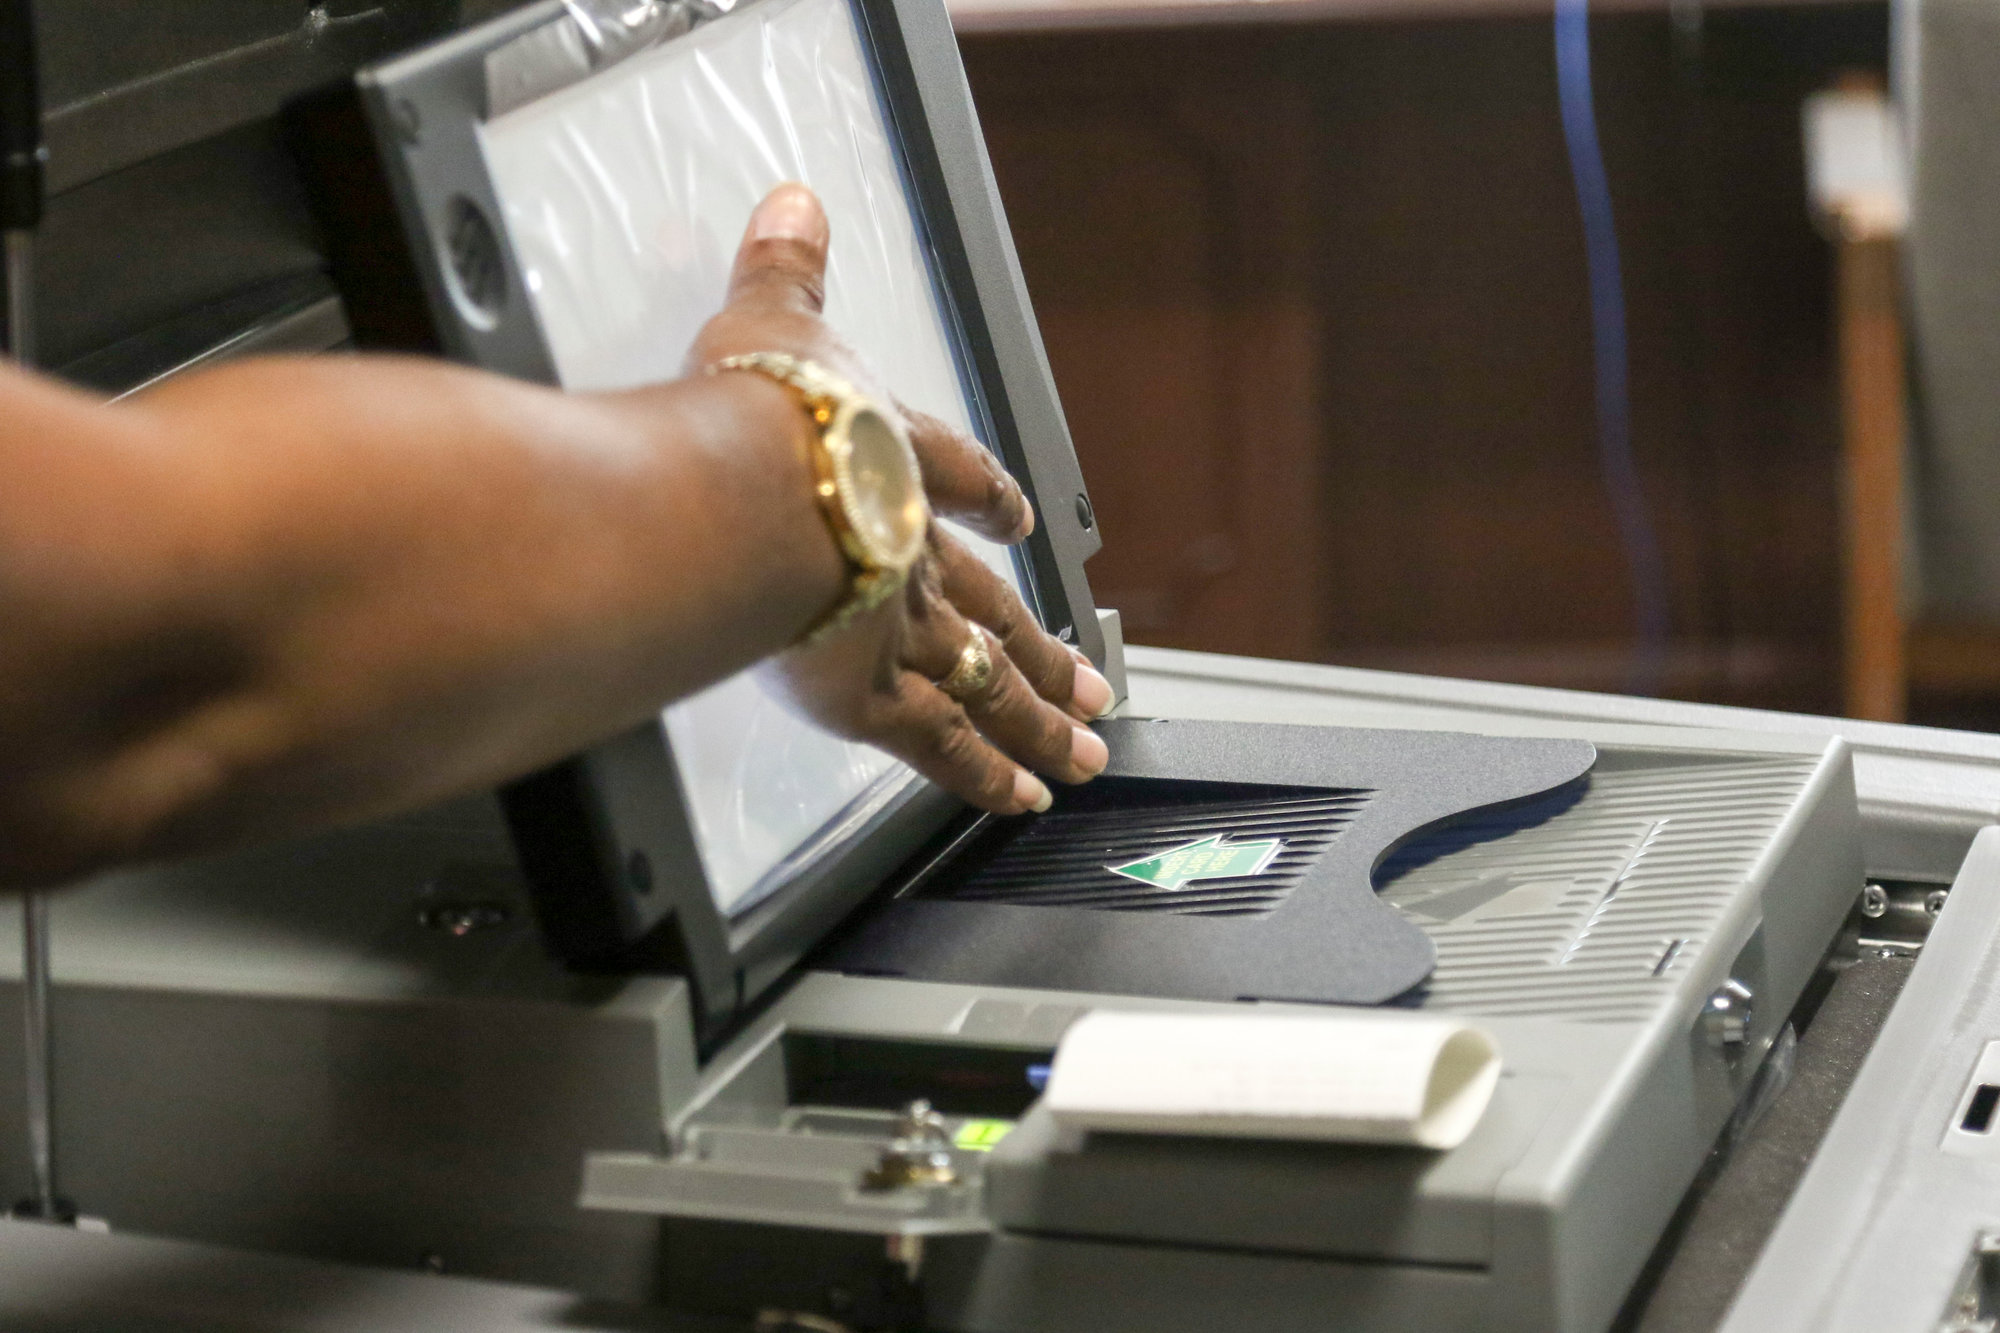 Ballot receipts are inserted into the top slot with the green arrow, and paper Scantron ballots are inserted into the larger slot below on the scanner machine.